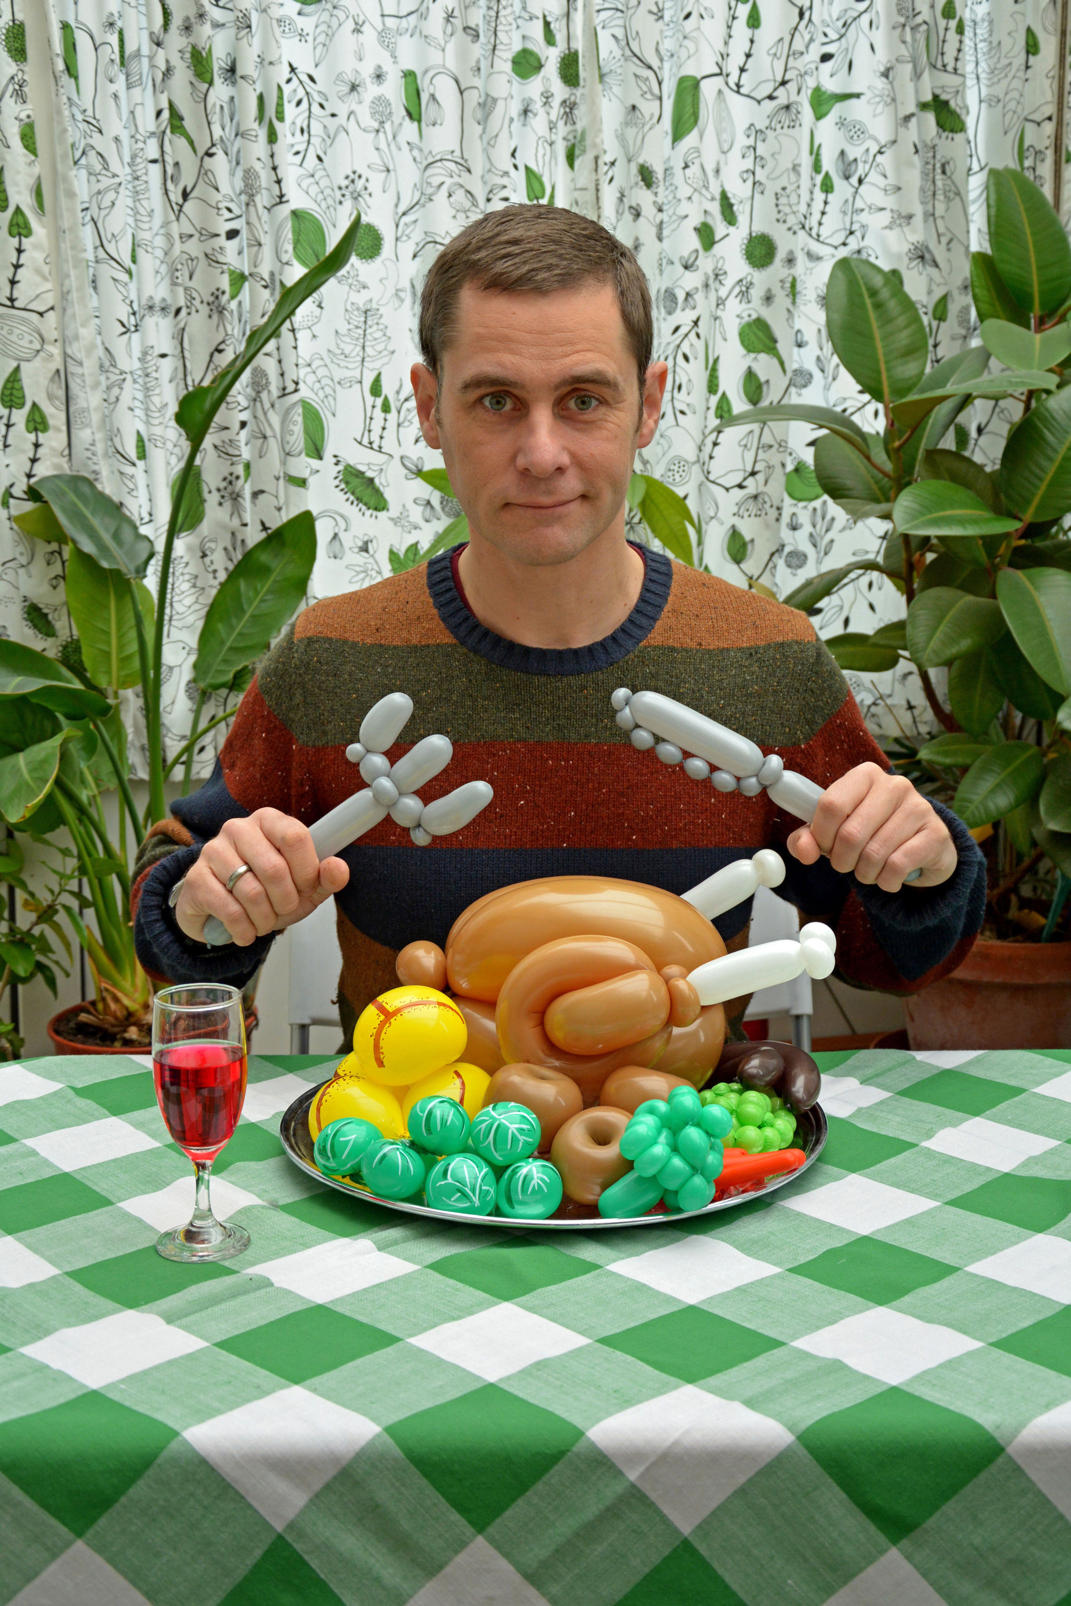 Rob with a balloon roast dinner and cutlery - (Rob Driscoll/CATERS NEWS)